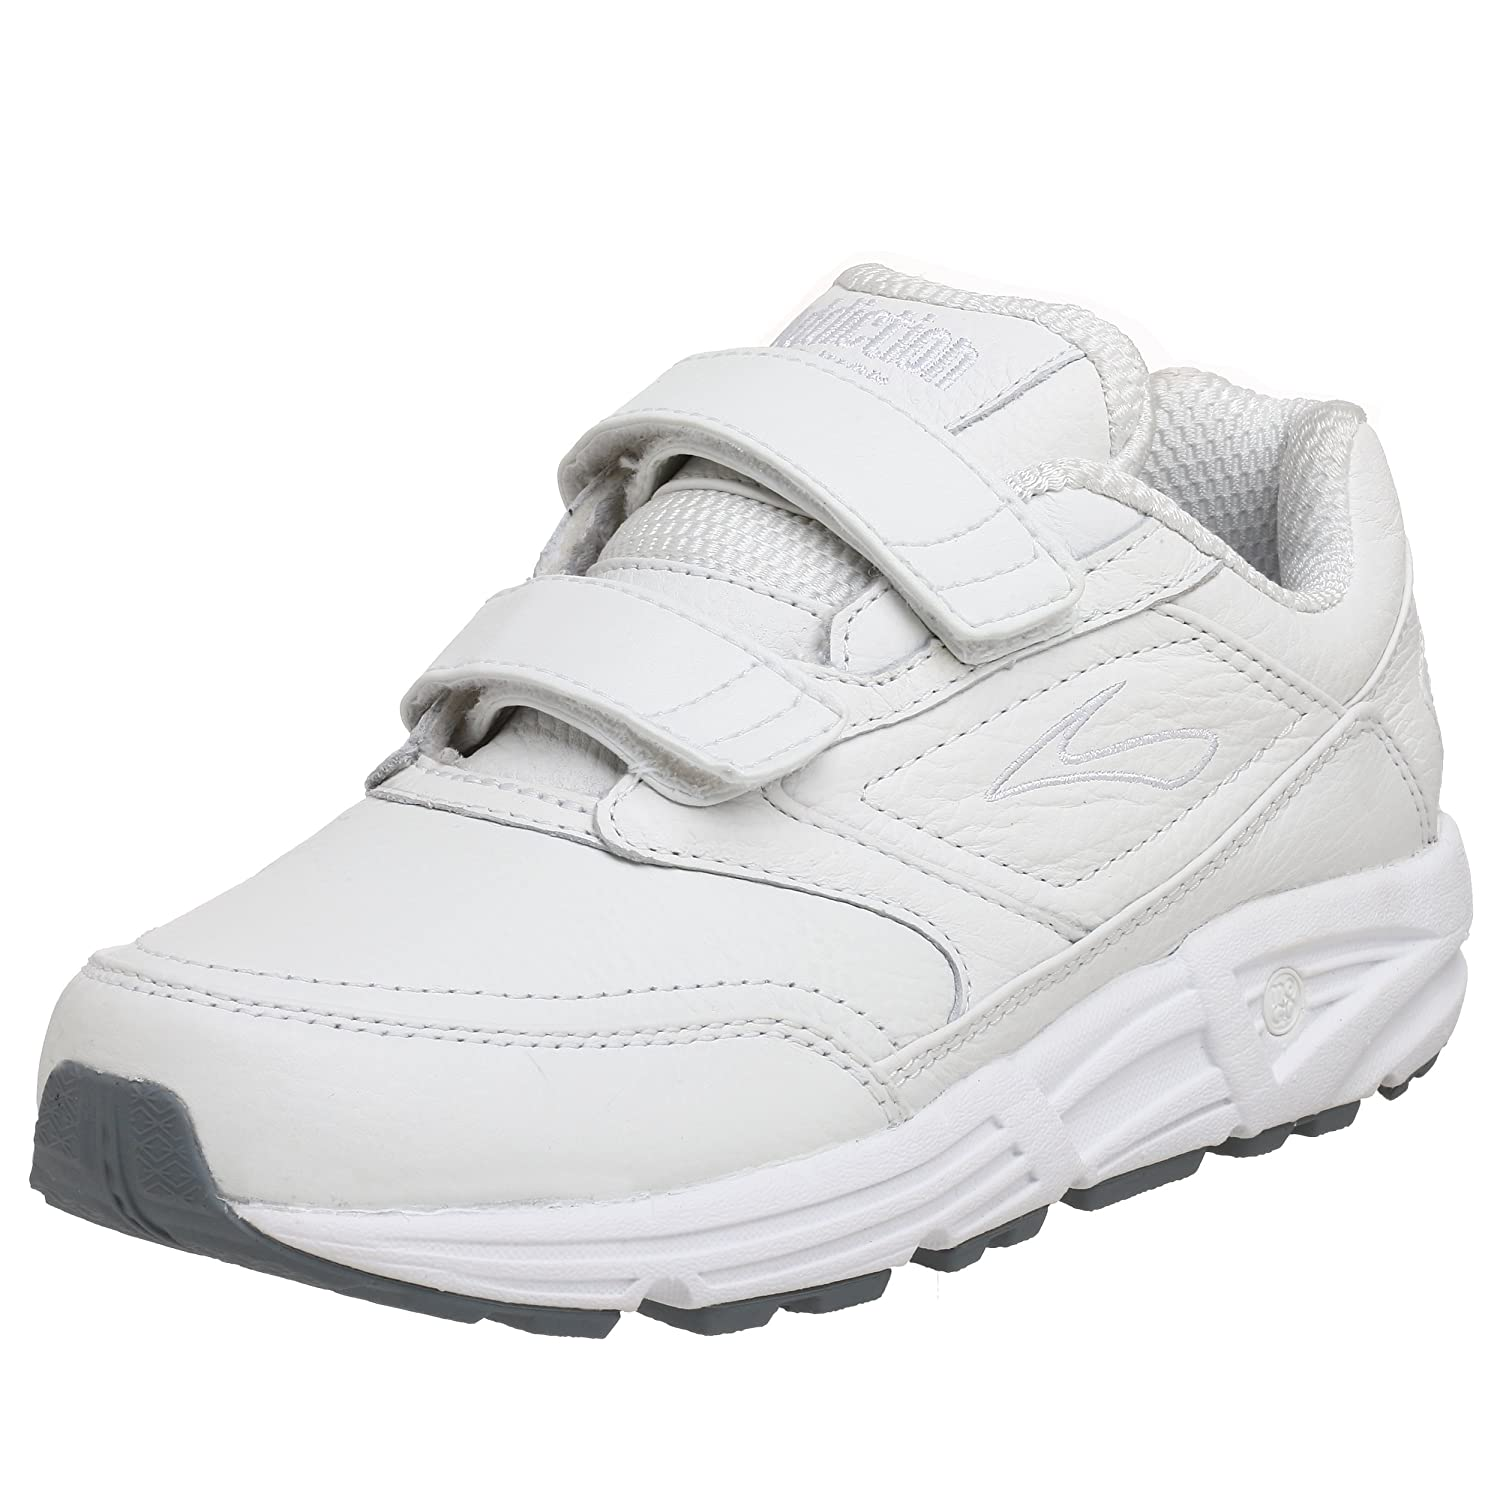 Brooks V-Strap Women's Addiction? Walker V-Strap Brooks B0012HT9XO 11 B(M) US|White 53e111